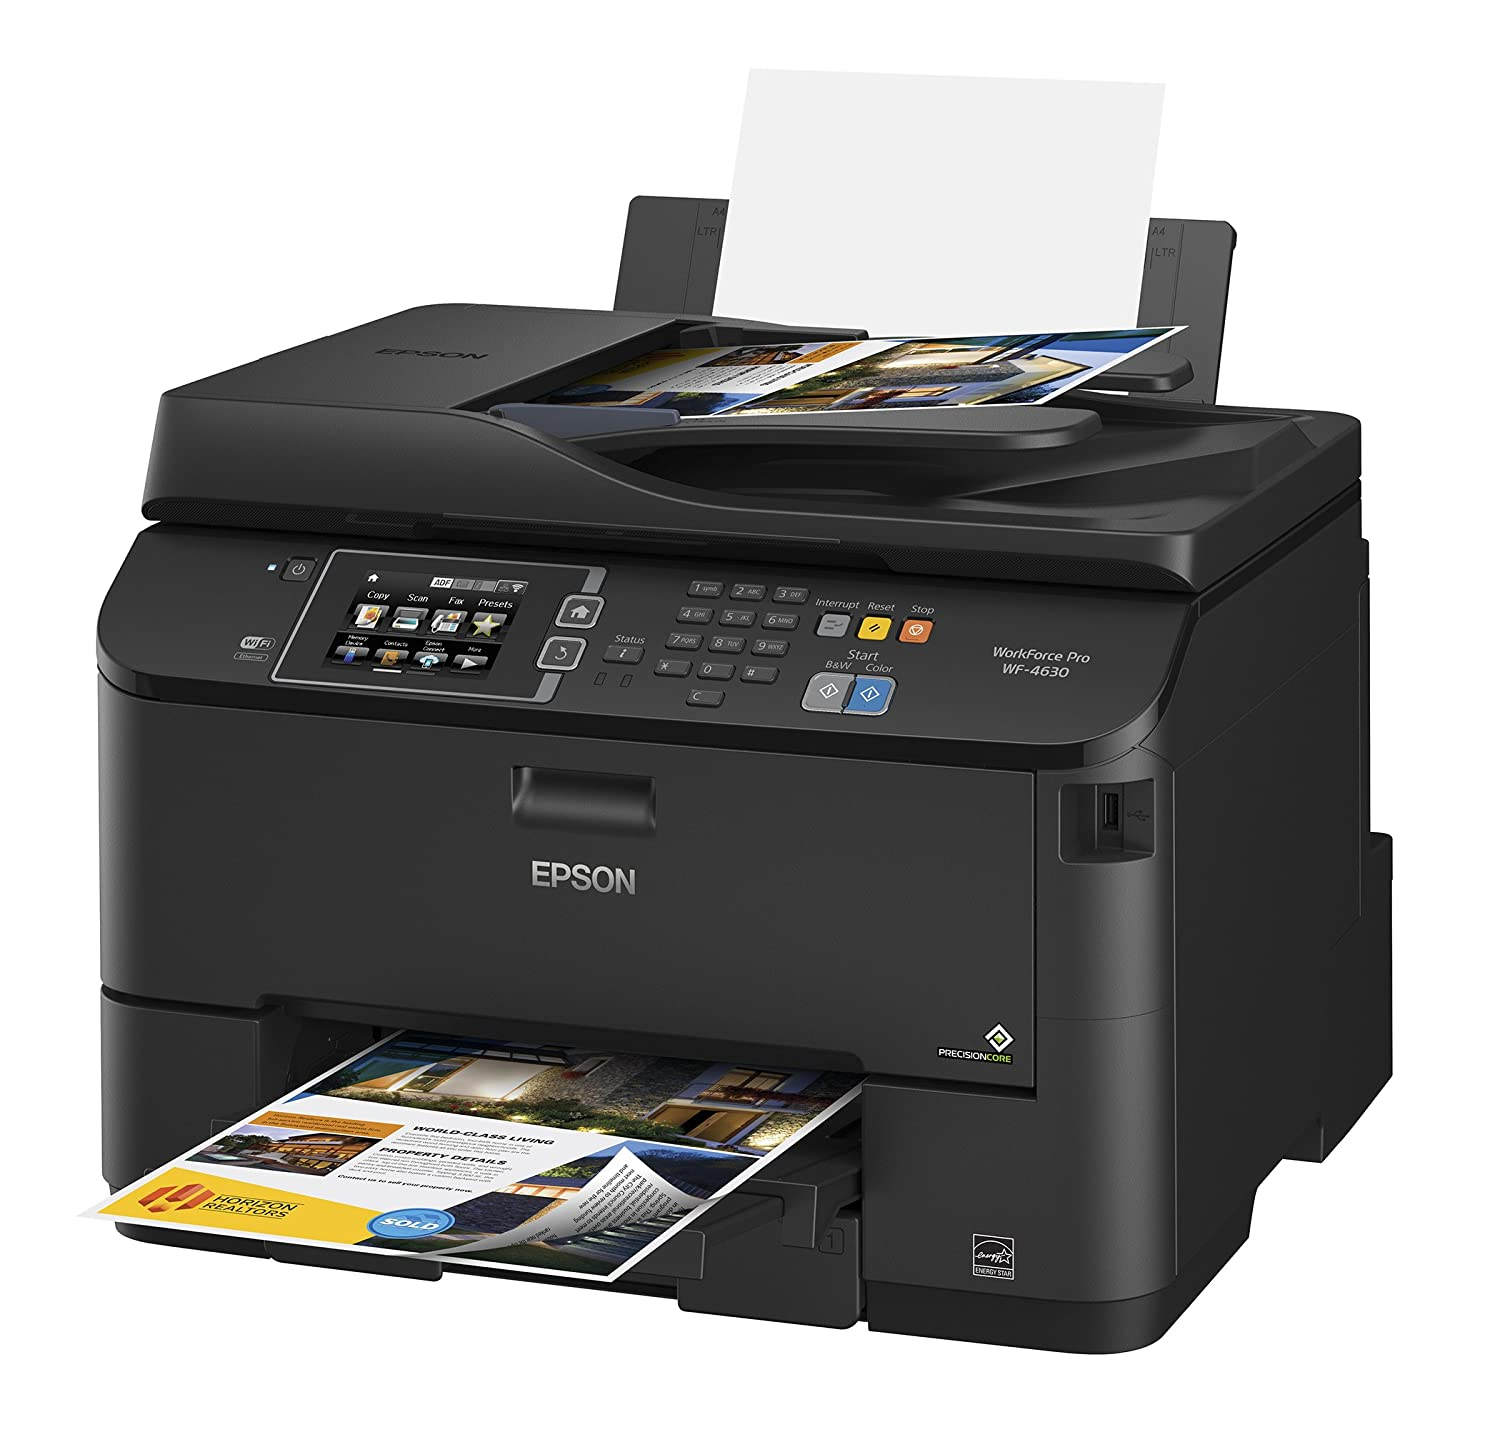 Color printouts in hyderabad - Amazon Com Epson Workforce Pro Wf 4630 Wireless Color All In One Inkjet Printer With Scanner And Copier Electronics